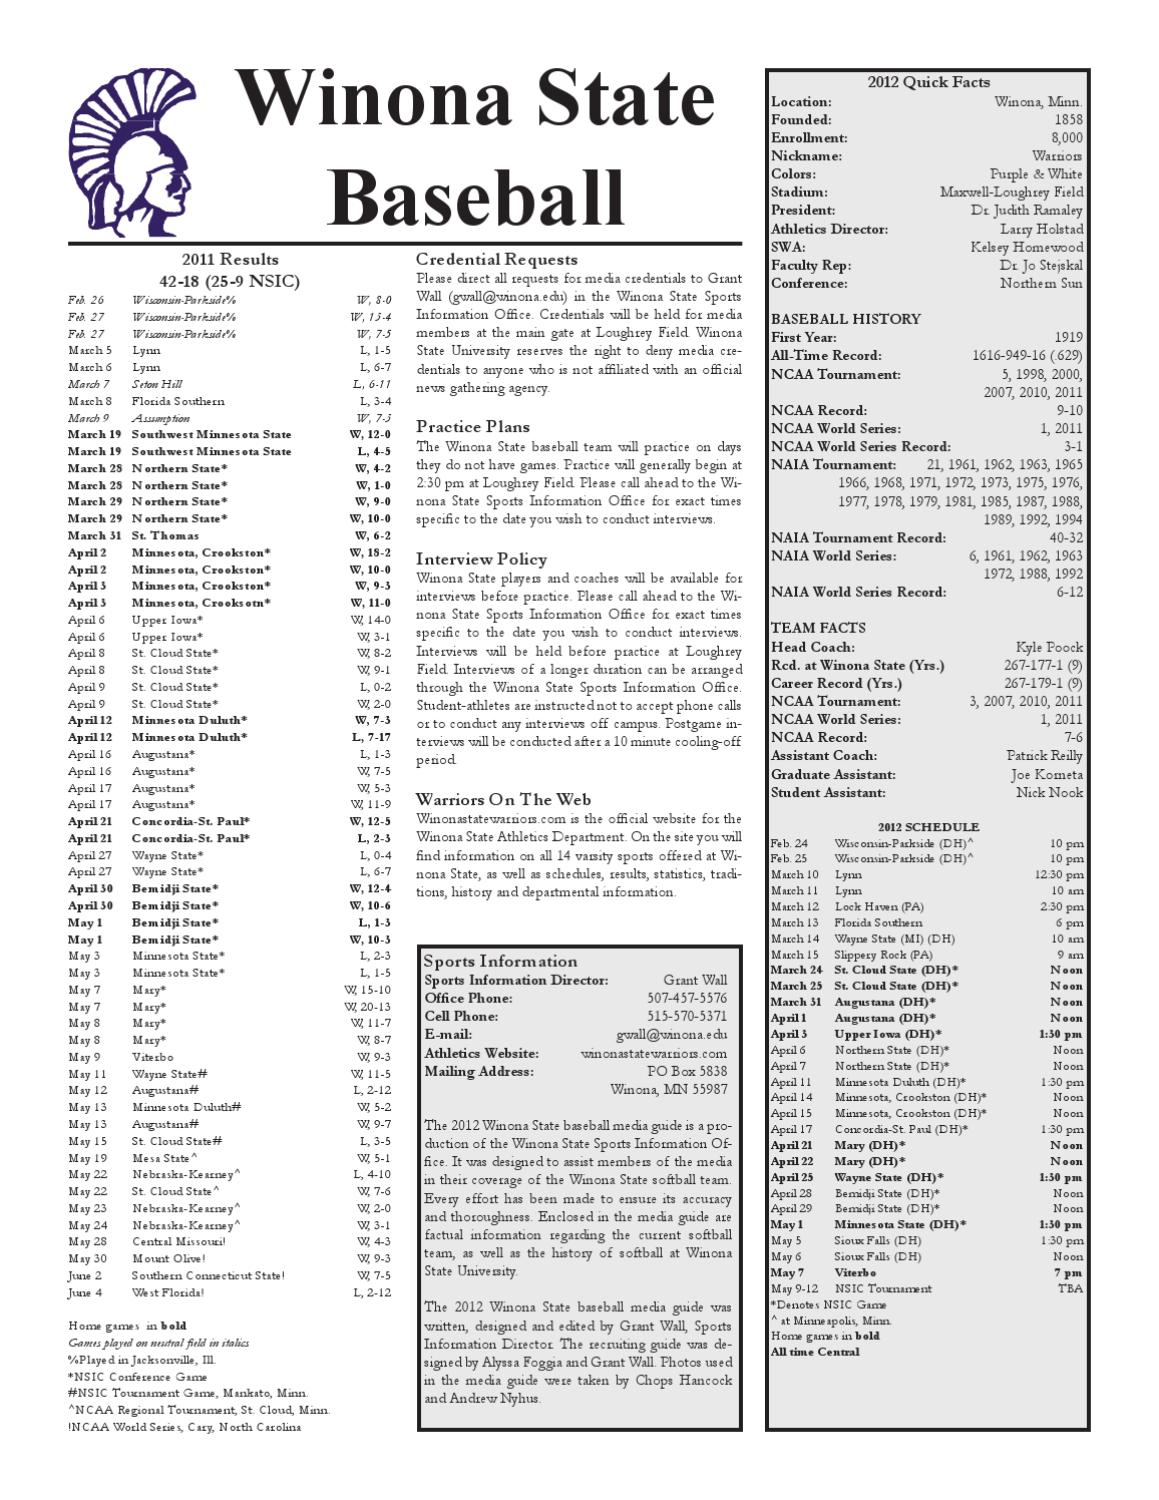 2012 Winona State Baseball Media Guide by Grant Wall - issuu